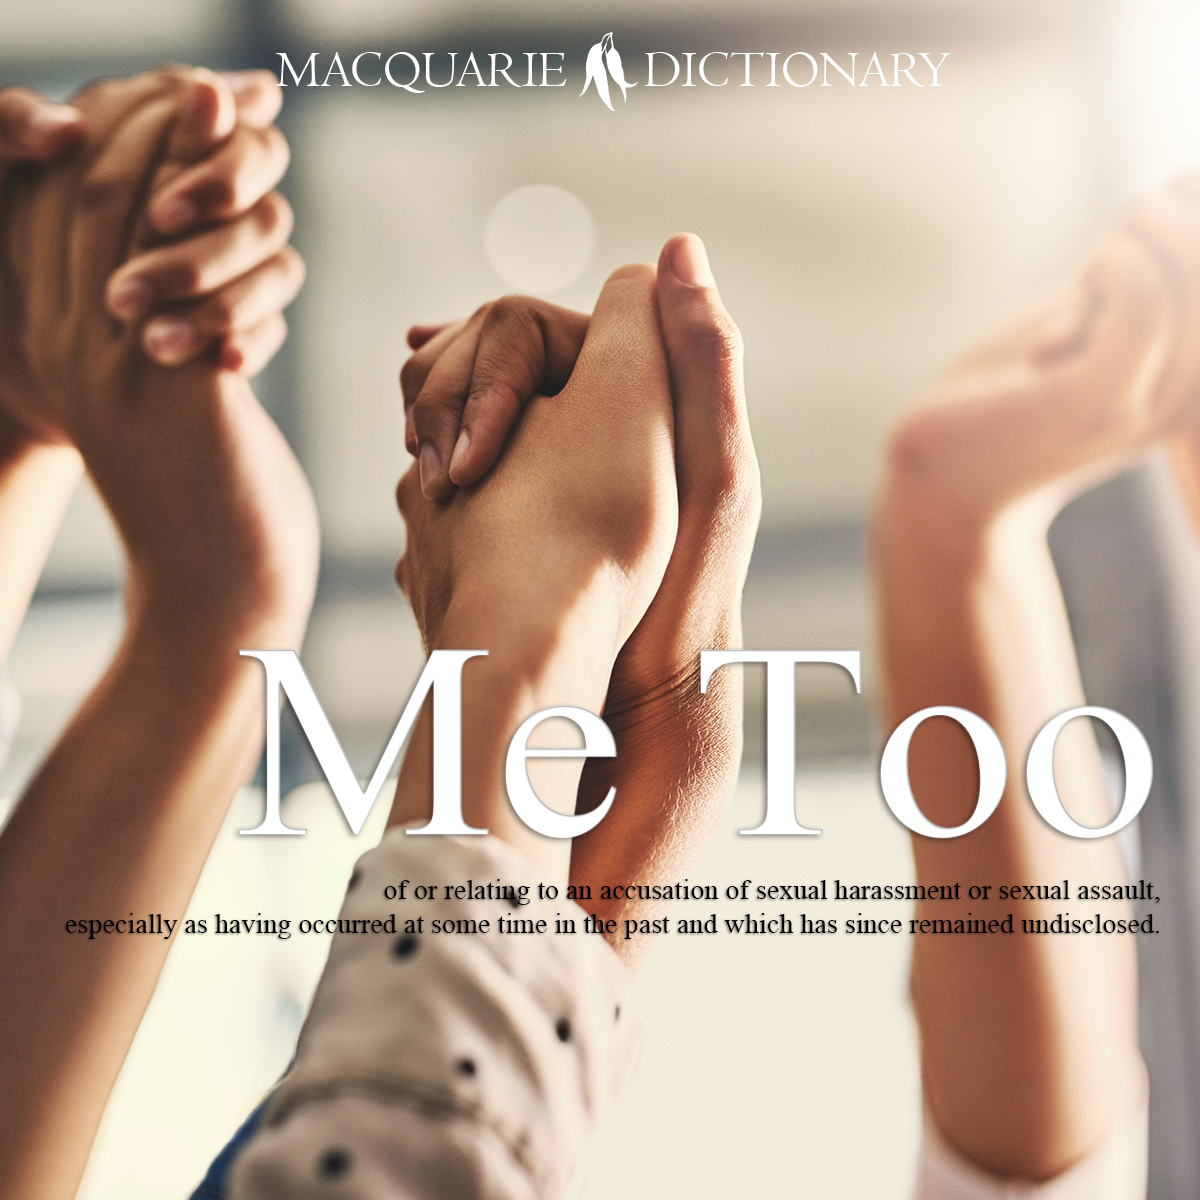 Me Too - of or relating to an accusation of sexual harassment or sexual assault, especially as having occurred at some time in the past and which has since remained undisclosed.